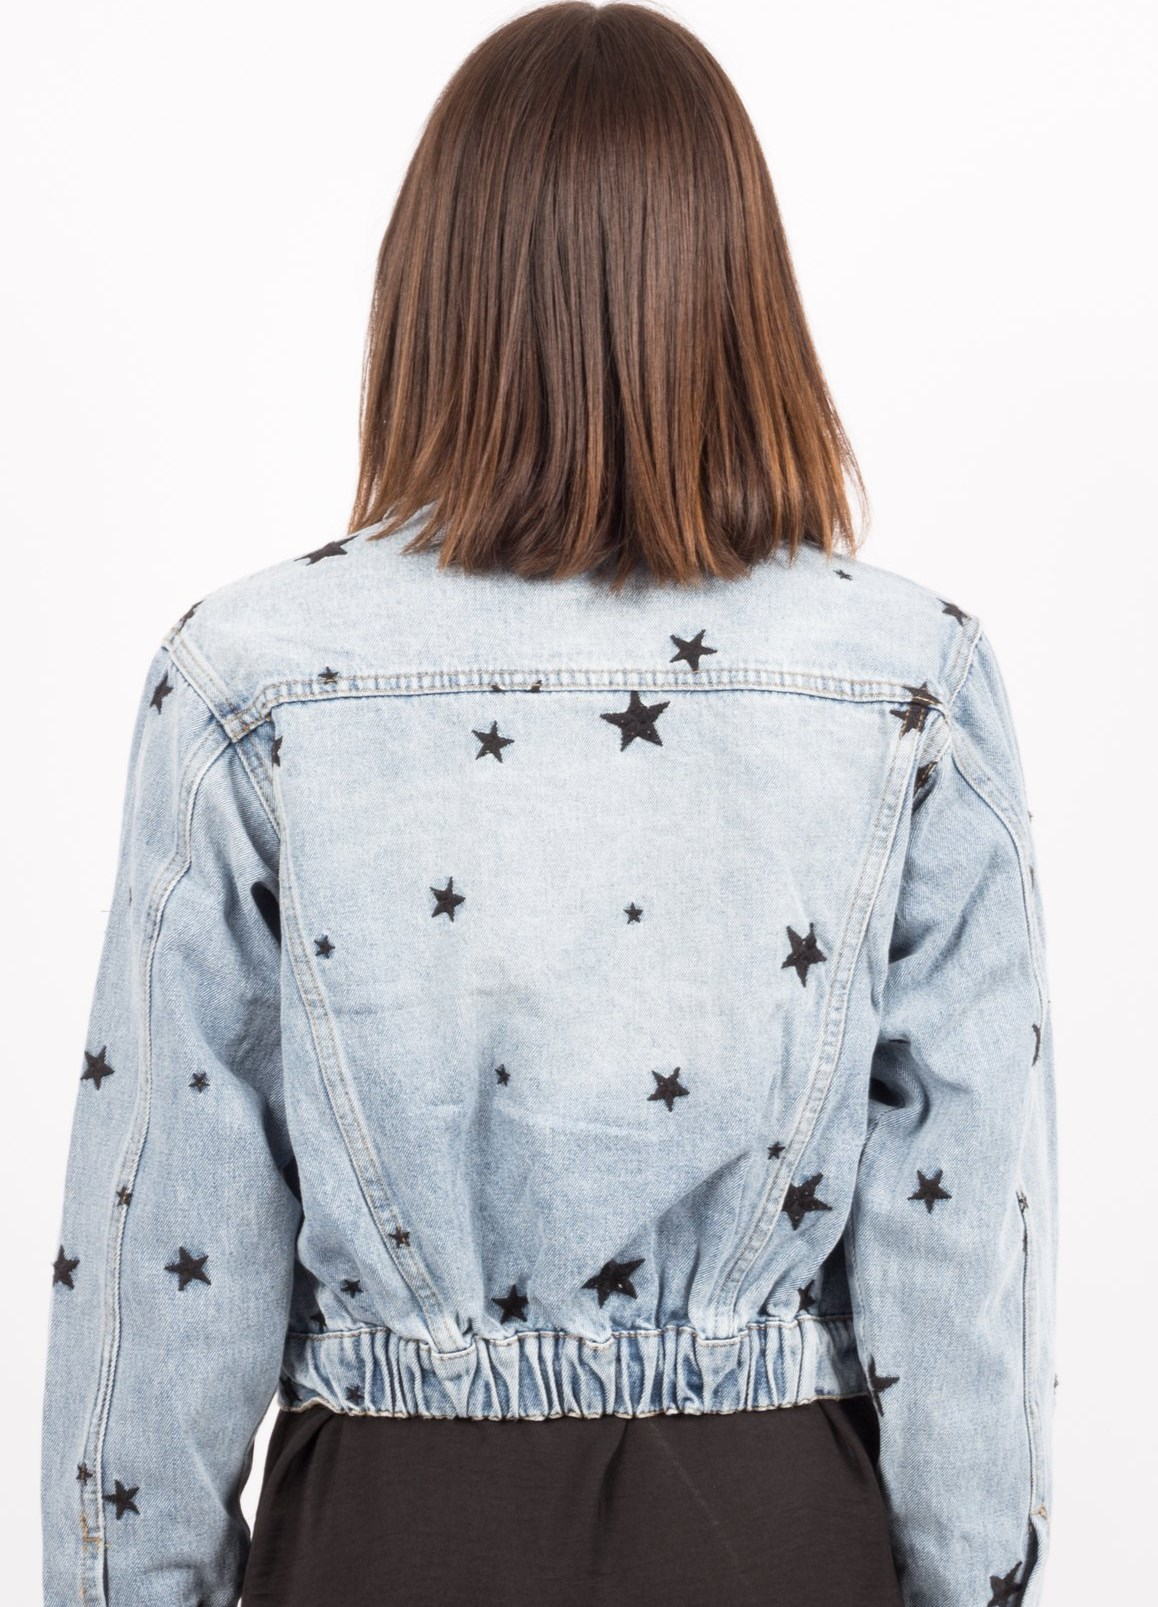 amuse society star jacket 1.jpg